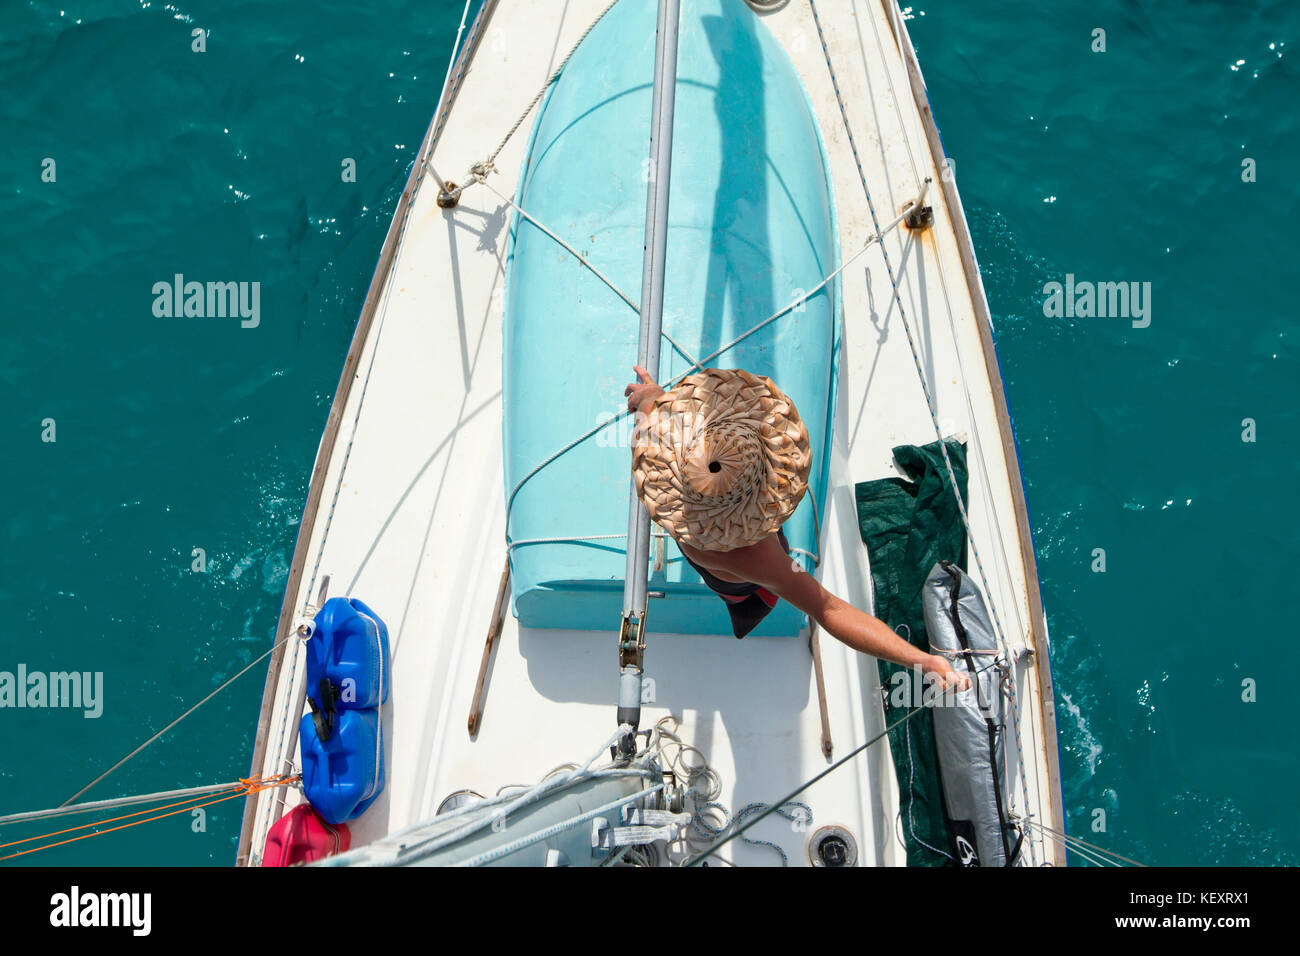 A man leans against the rigging as seen from above after wrapping the sail off Glovers Reef on the coast of Belize. - Stock Image